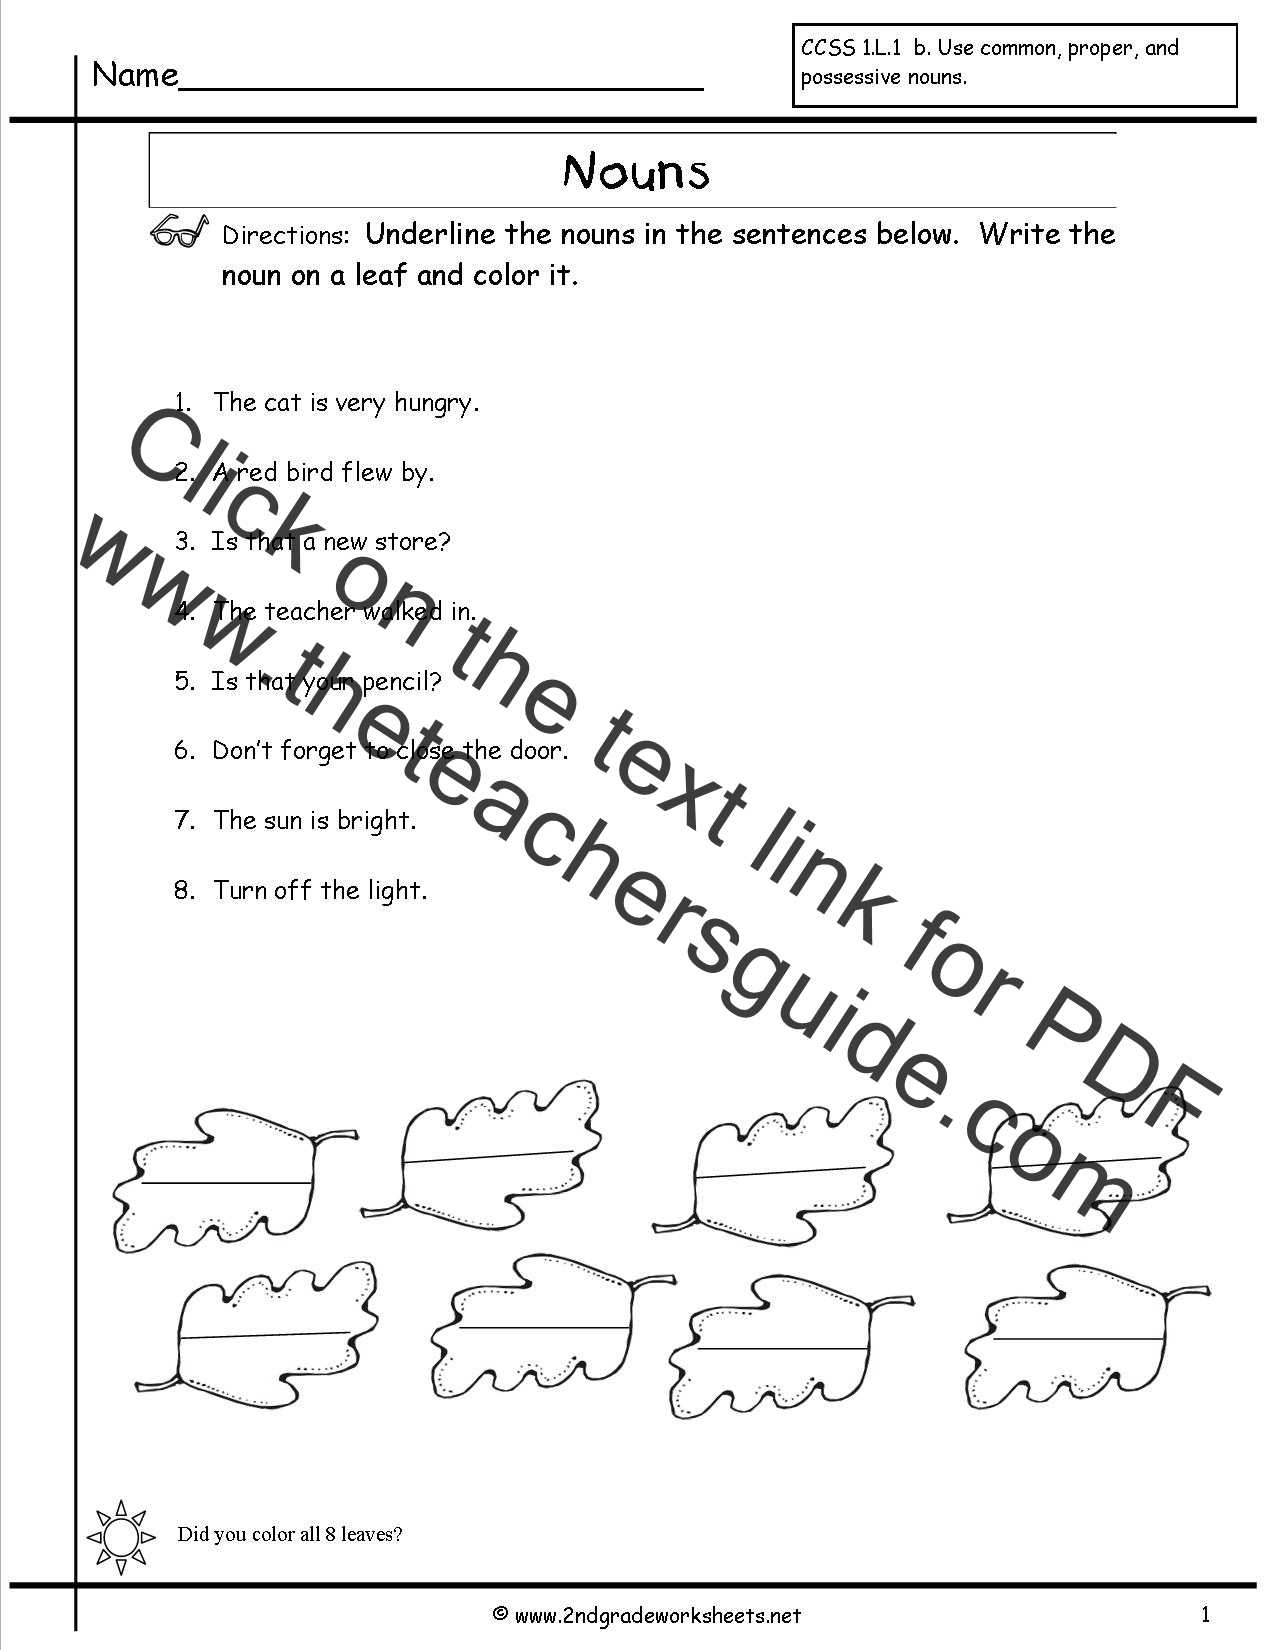 worksheet Noun Worksheets For 1st Grade nouns worksheets and printouts worksheet